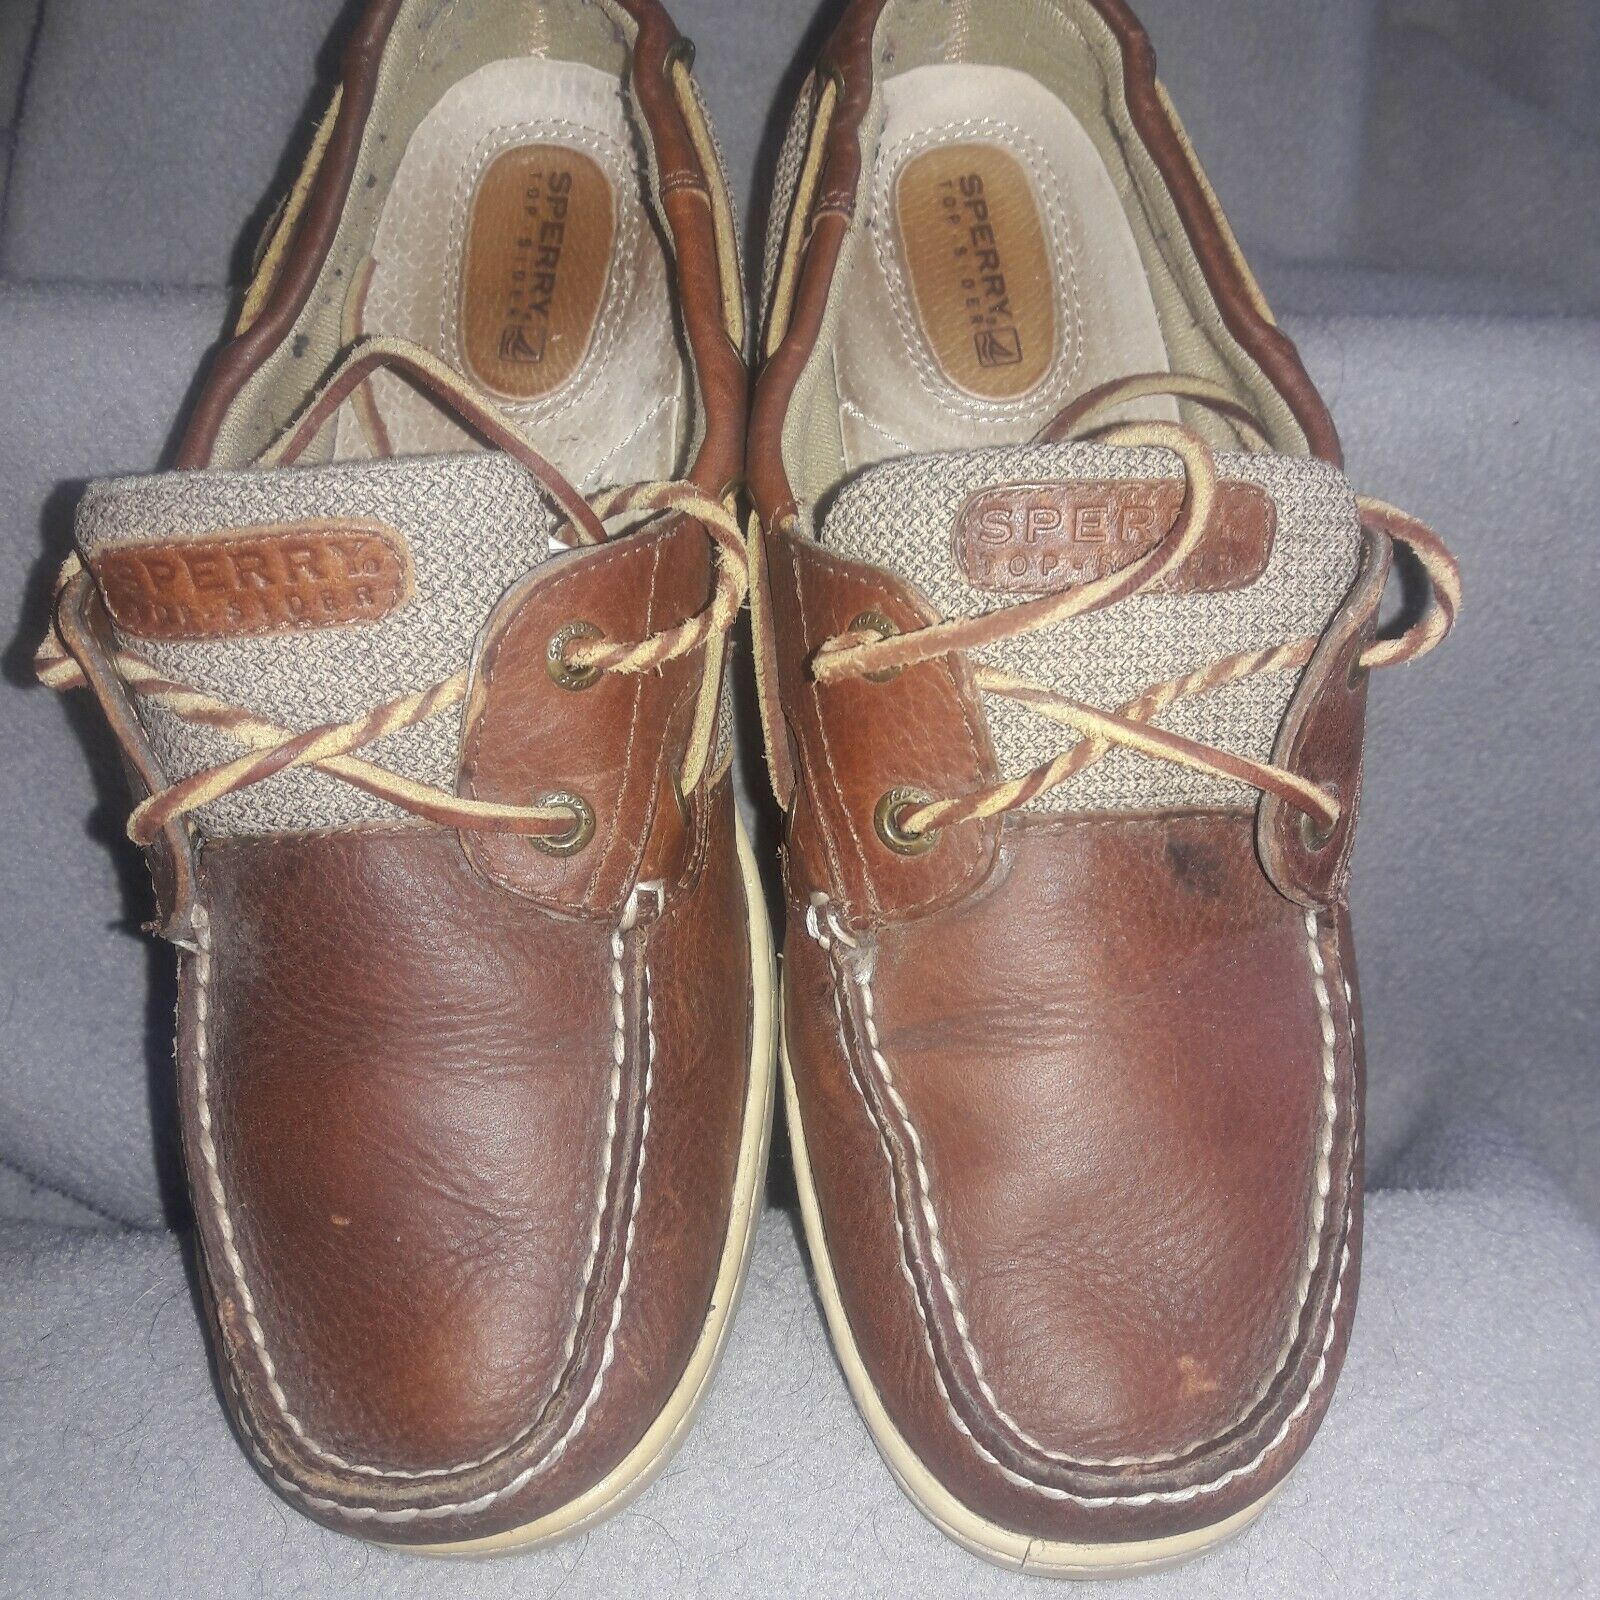 Primary image for Women leather Sperry Top-Sider Billfish boat shoe. - size 10 M comfort.  Lace up